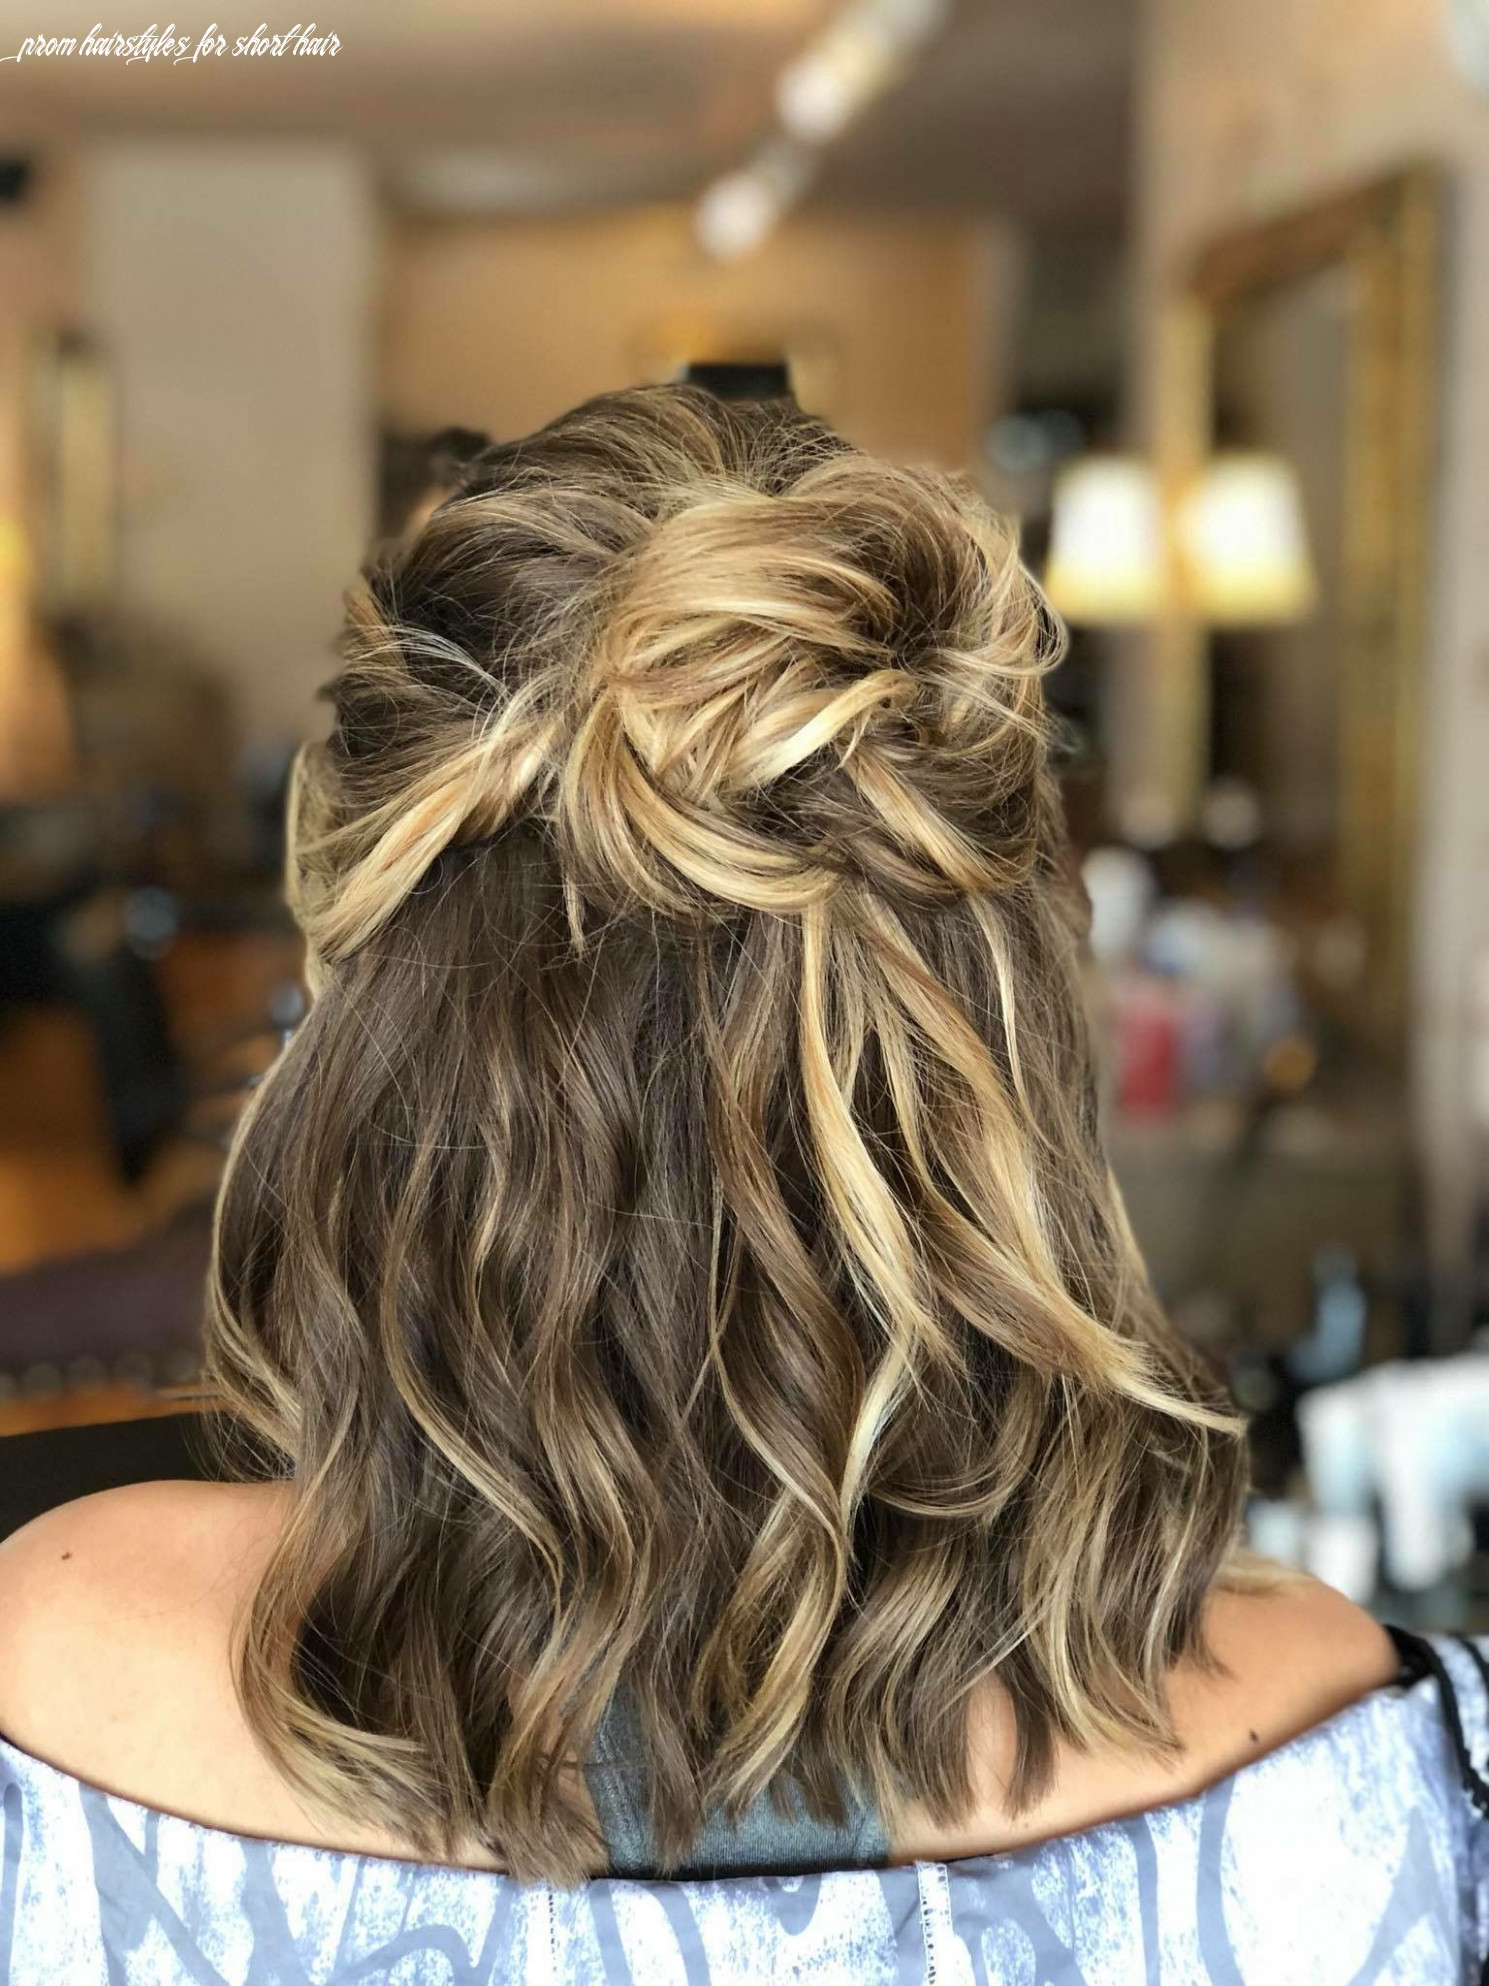 Pin by erin olafson on hair   prom hairstyles for short hair